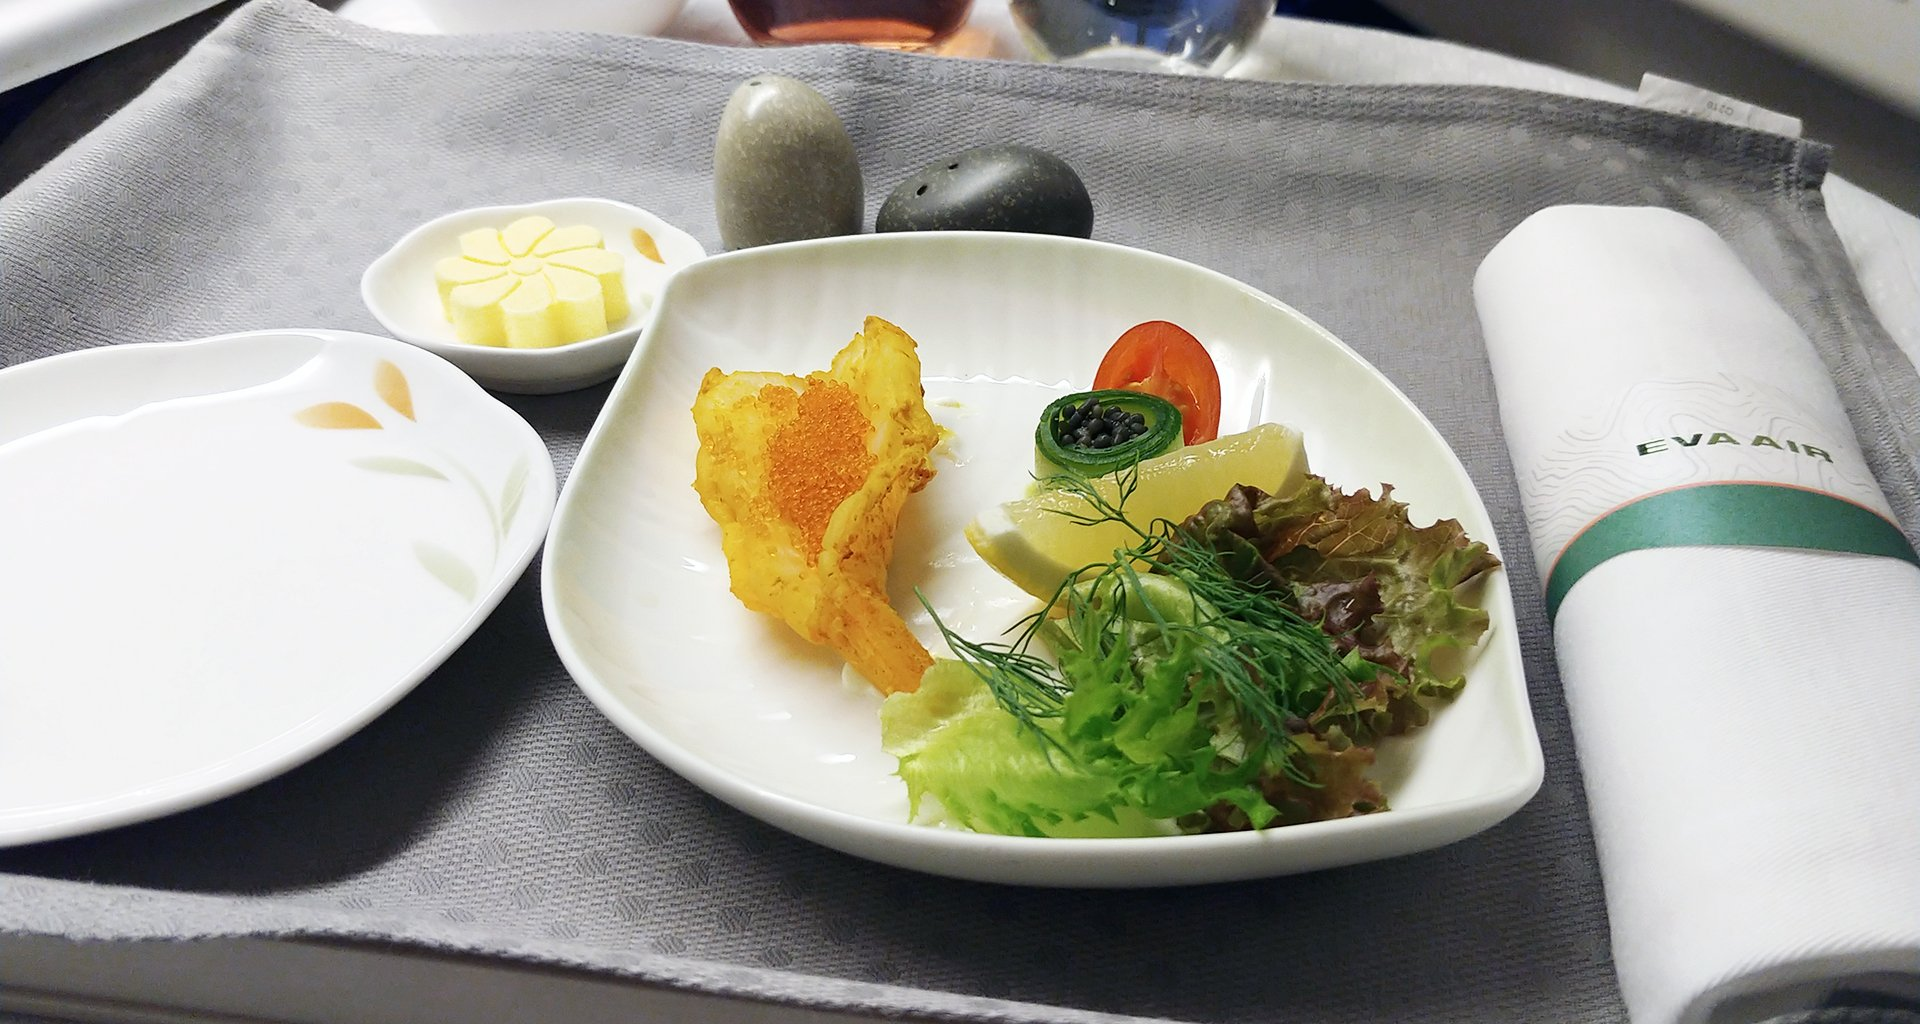 Eva Air prawn starter business class meal